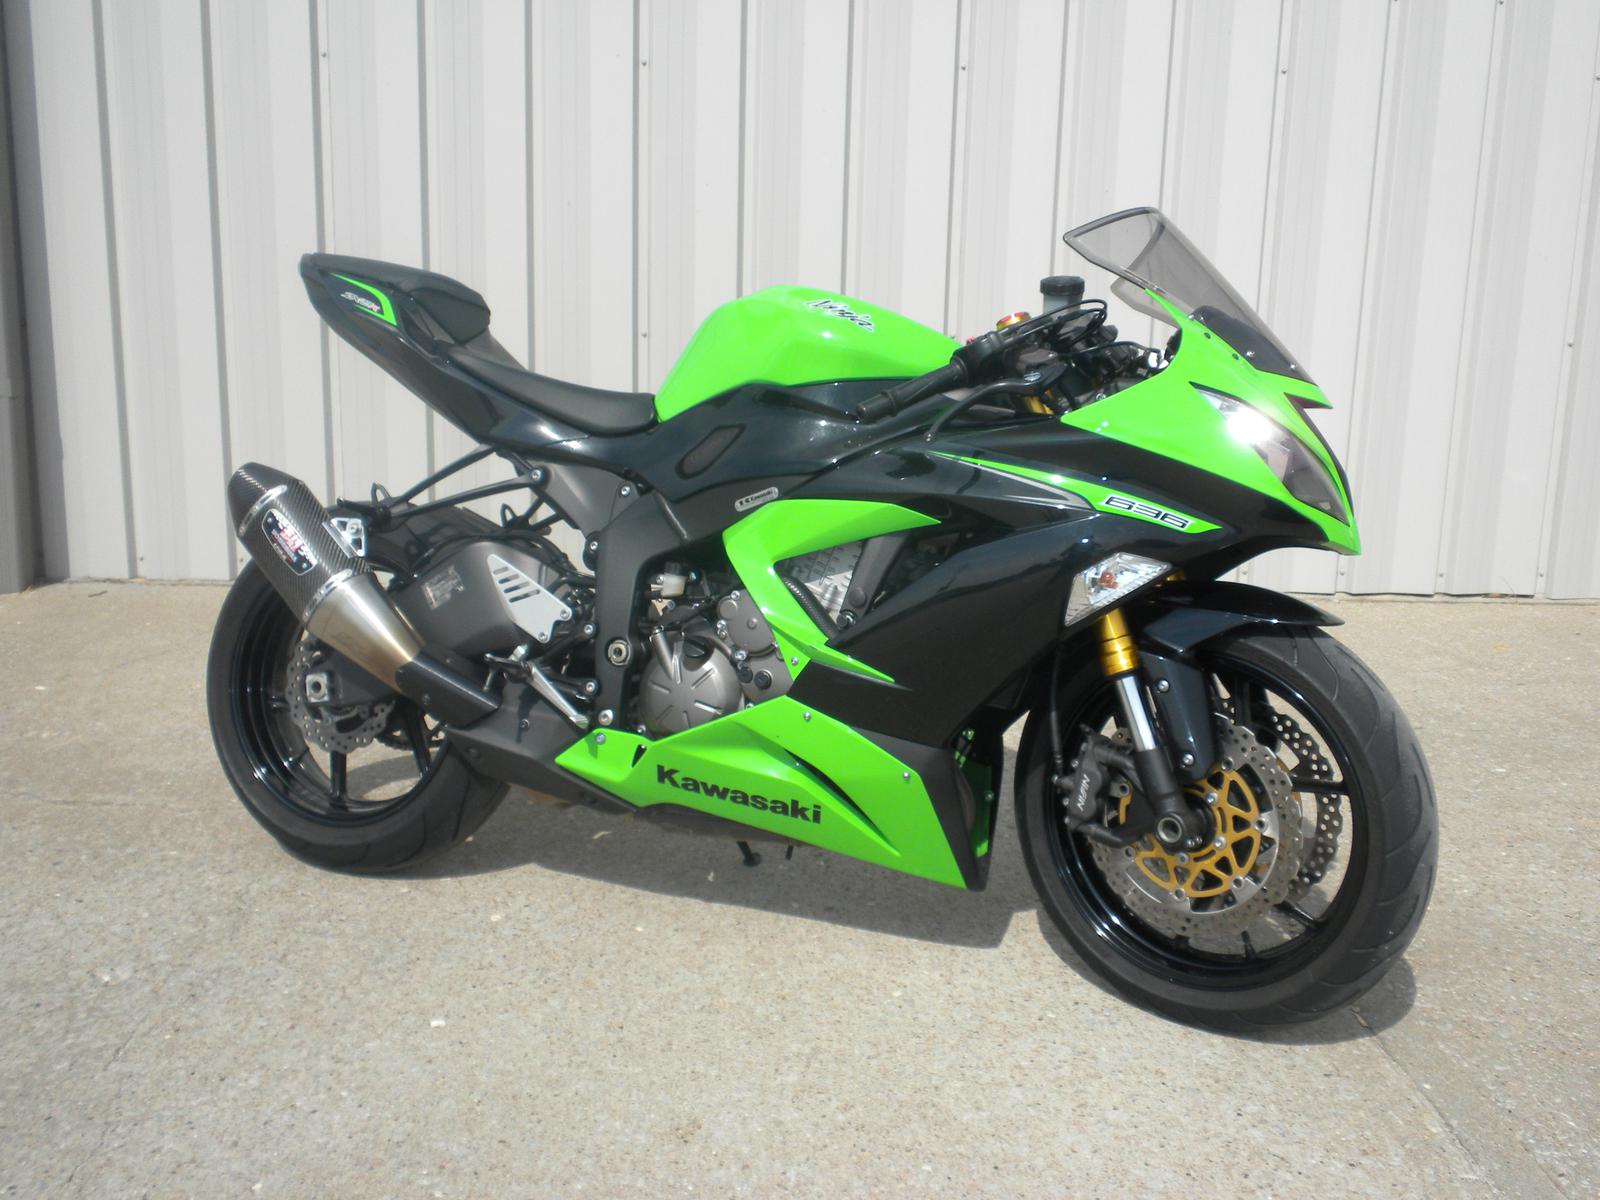 2013 Kawasaki Ninja ZX6R 636 for sale in Sedalia, MO. 's Cycle ...